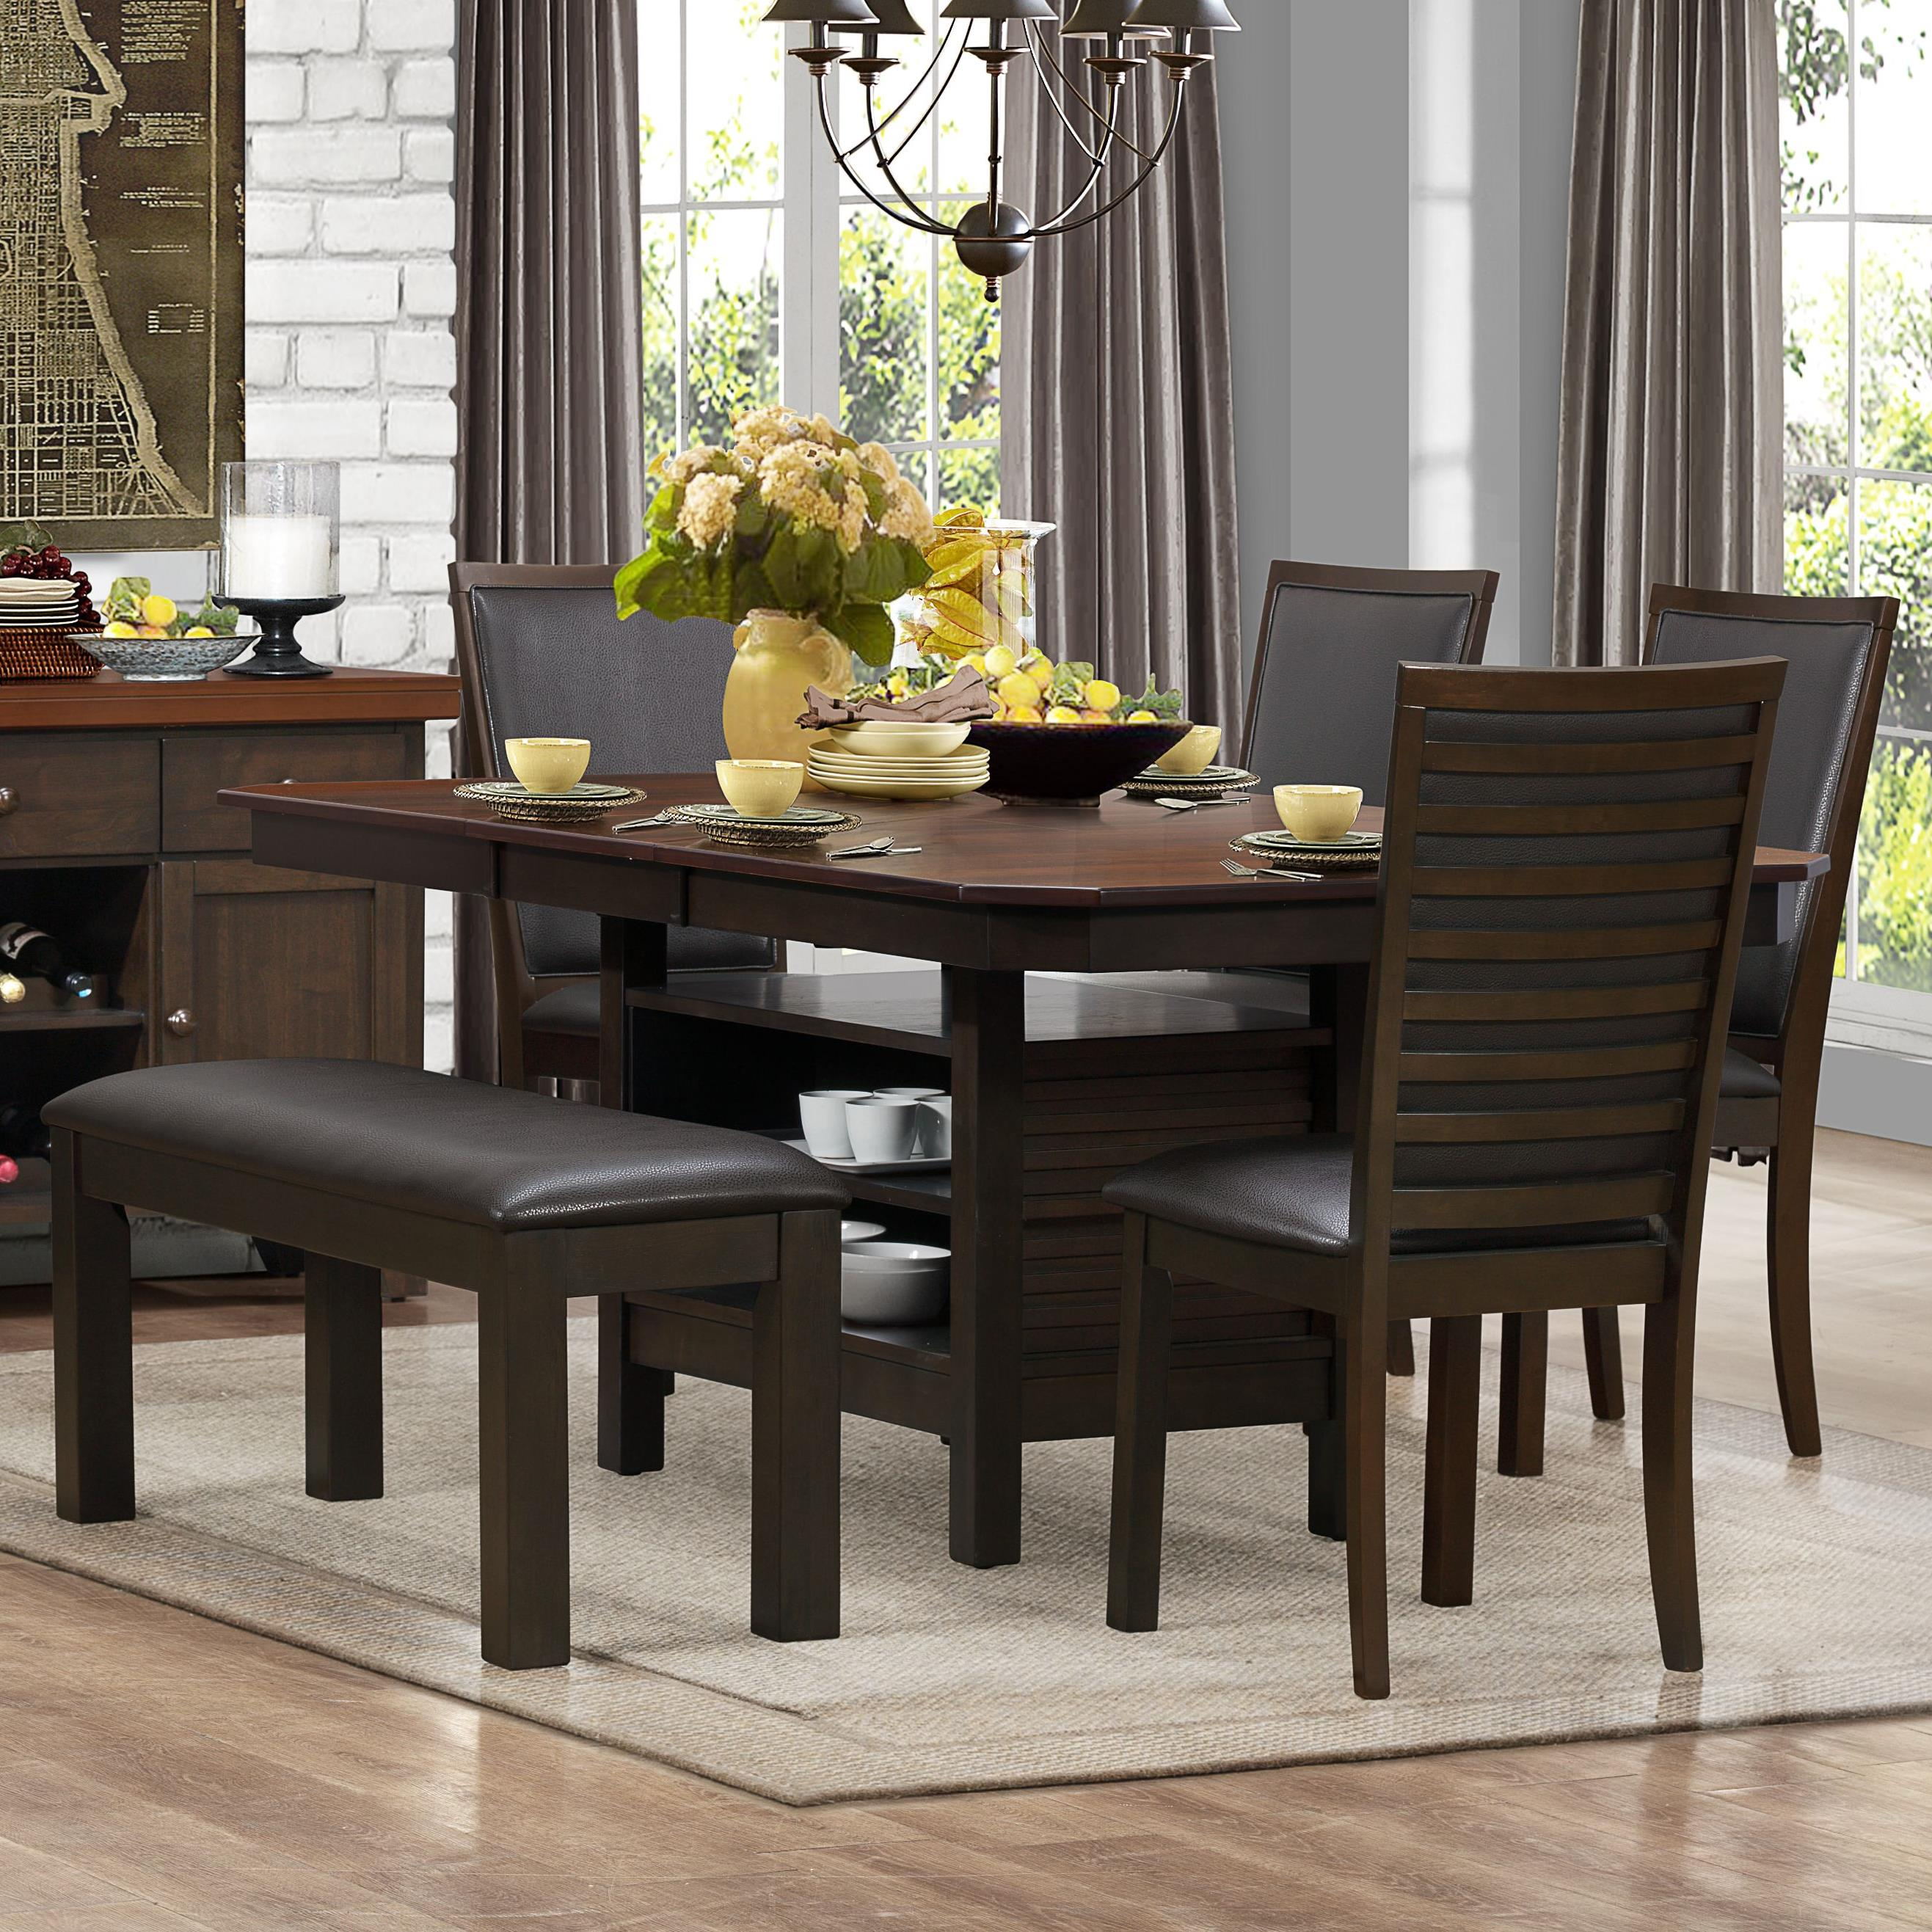 Homelegance Corliss Dining Table & Chair Set with Bench - Item Number: 5136-78B+78+4xS+13